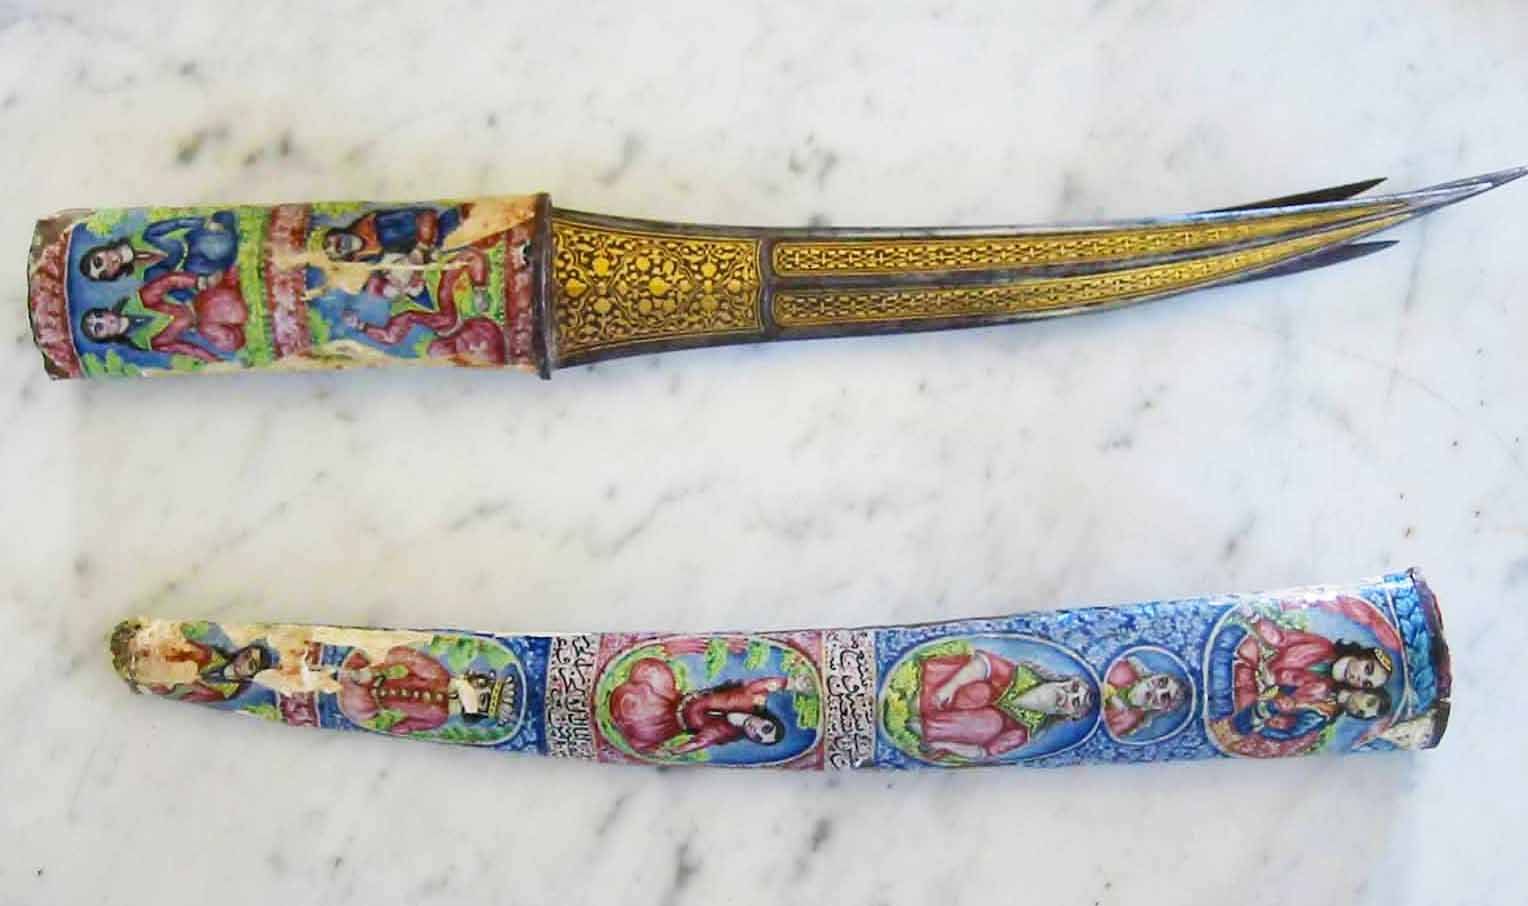 Enamel on Copper. Persian, Qajar Dynasty